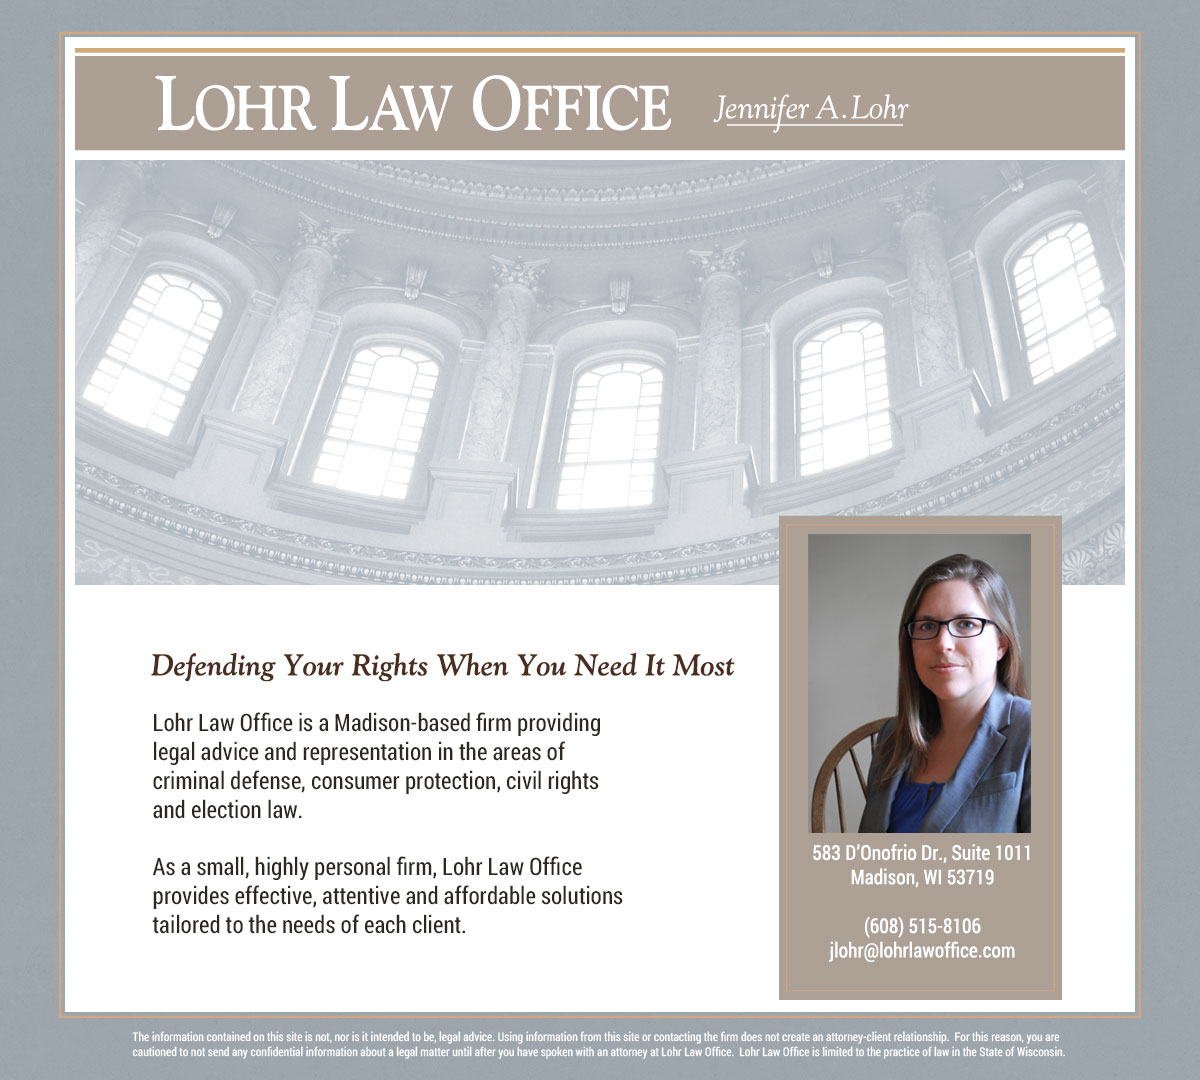 Lohr Law Office, Madison, WI